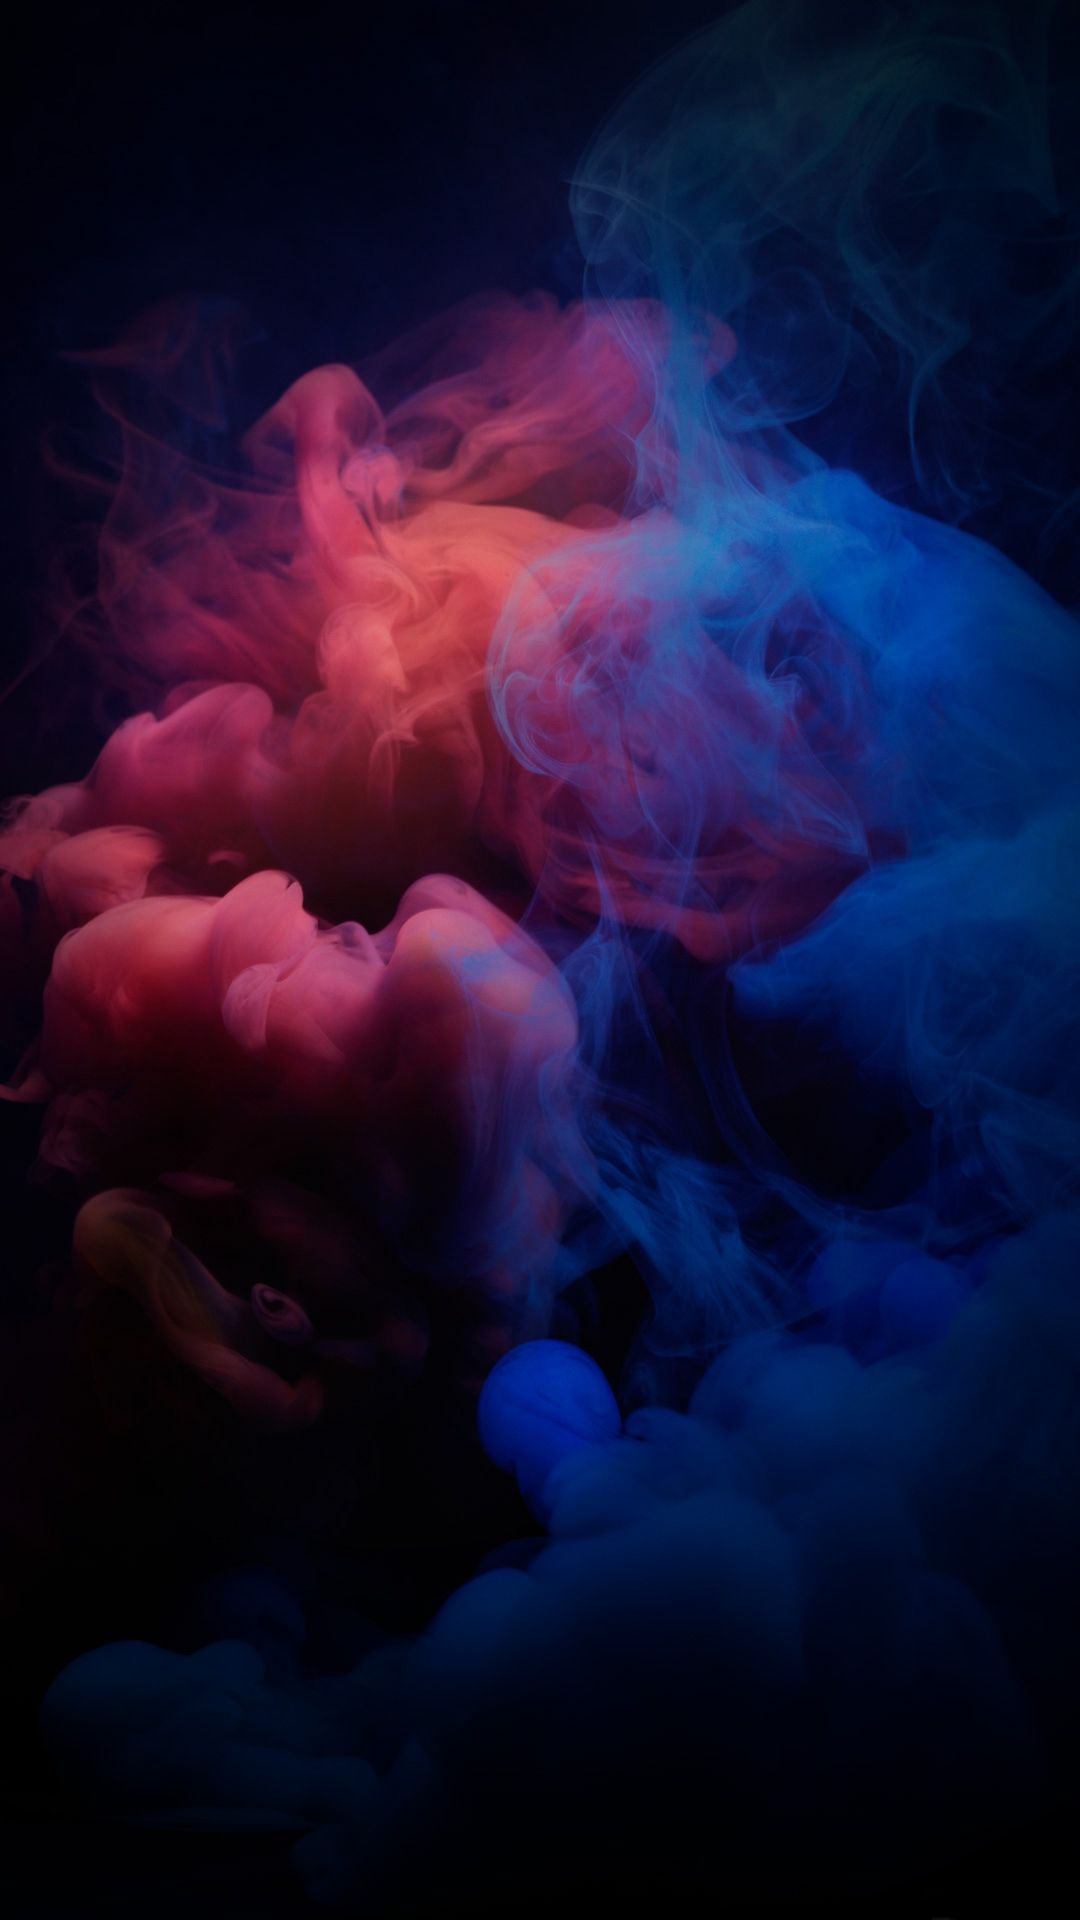 SMOKE+RED+BLUE+DARK+WALLPAPER+1080X1920 | Цветной дым ...